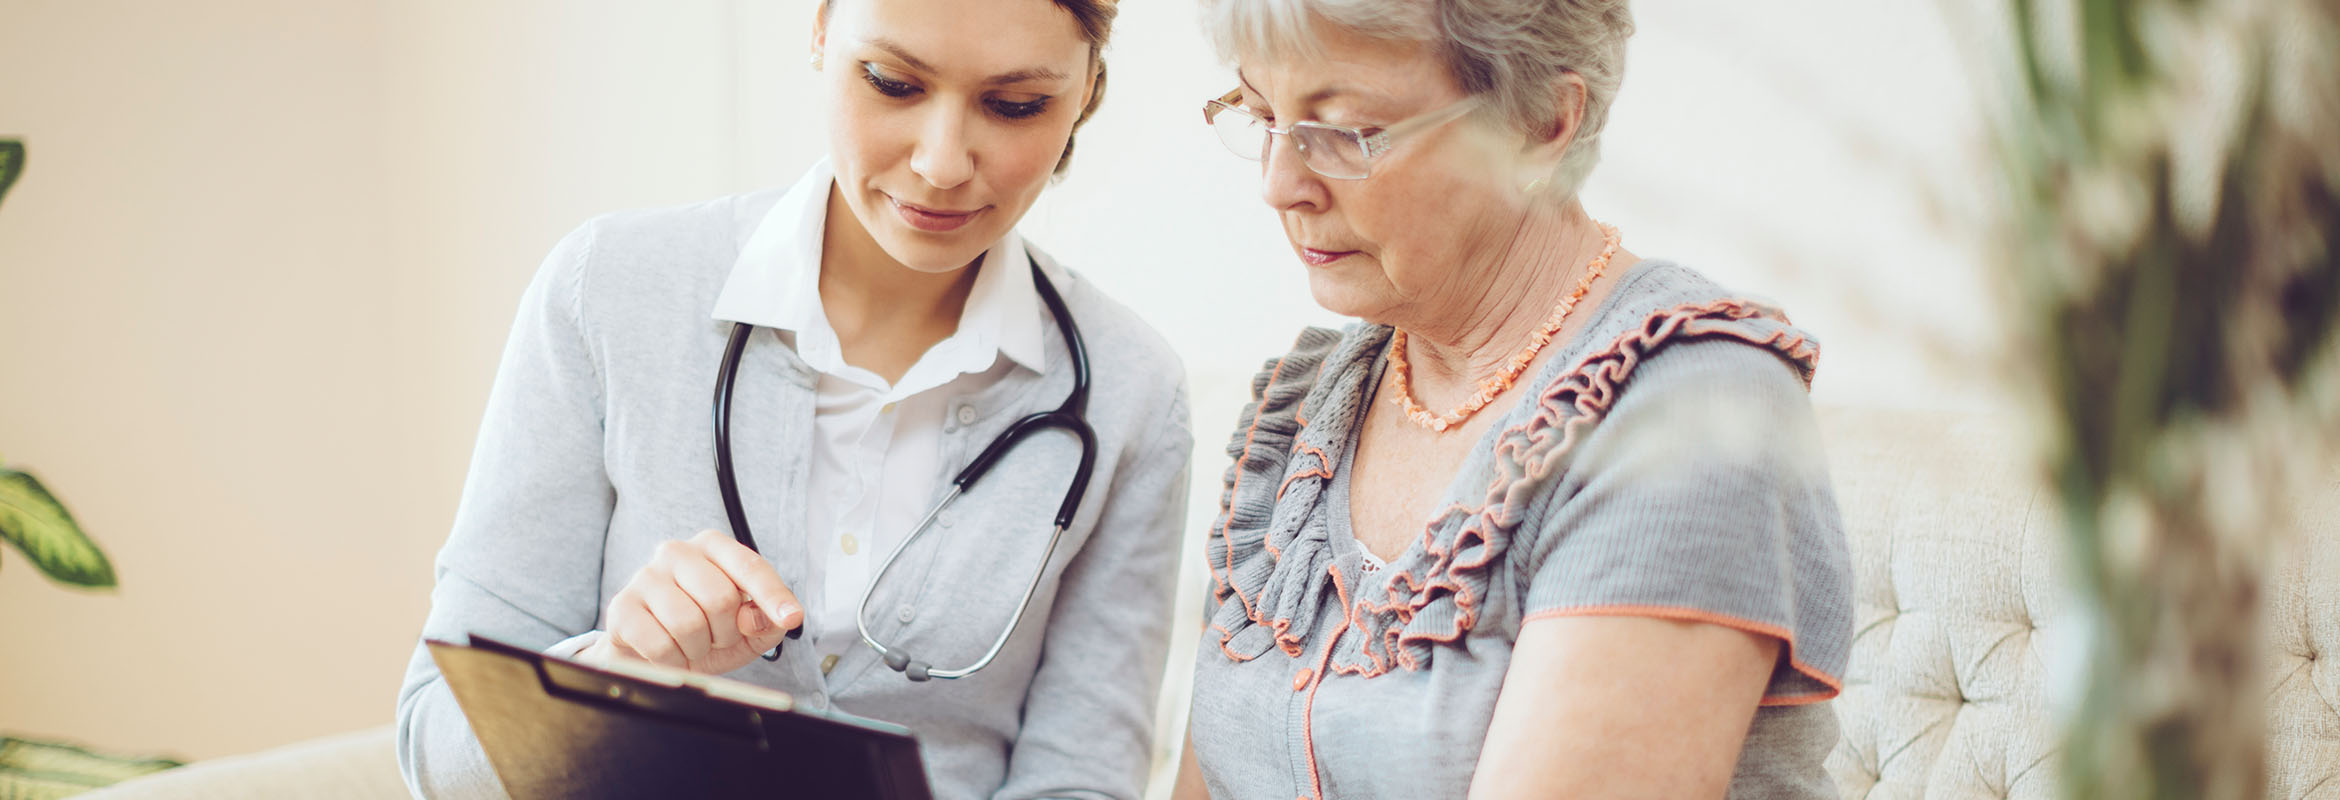 What is Medicare Authorization Form And How to Use it?